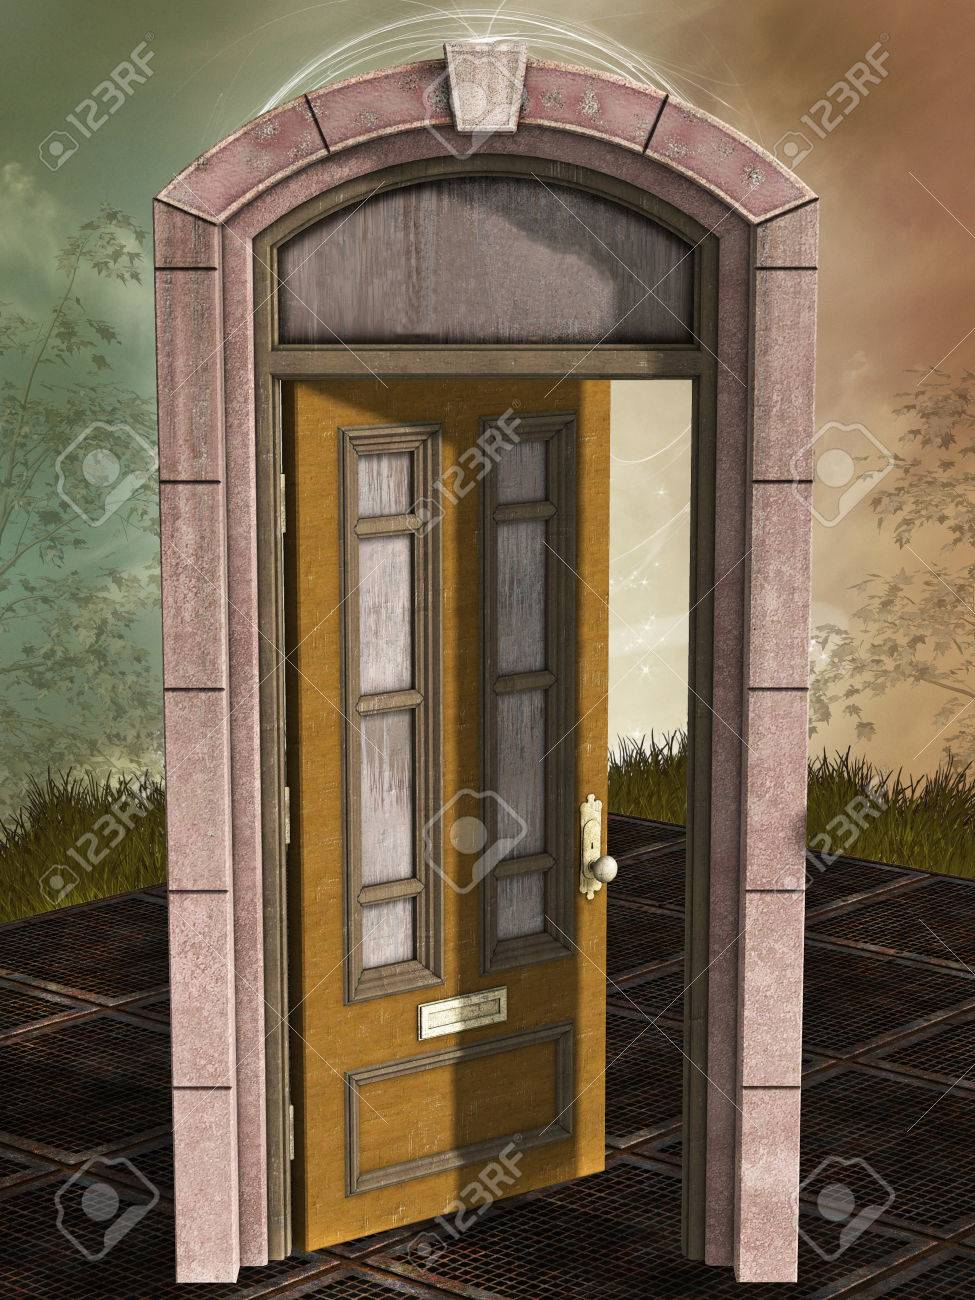 Fantasy magic door open in the forest Stock Photo - 48195415 & Fantasy Magic Door Open In The Forest Stock Photo Picture And ...